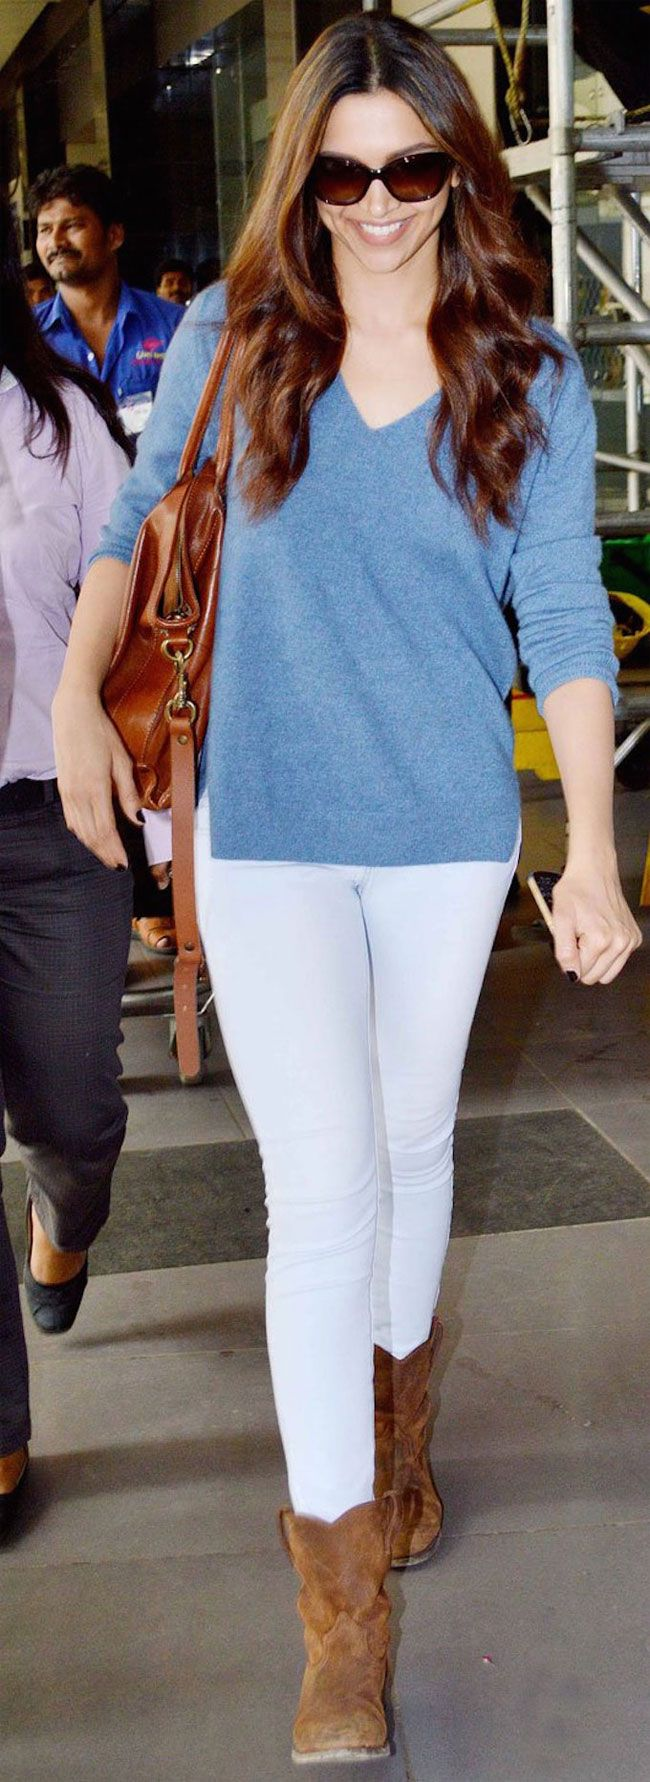 Top 10 Bollywood Actress In Casual Dresses Sheideas Winter Outfits Deepika Padukone Style Casual Chic